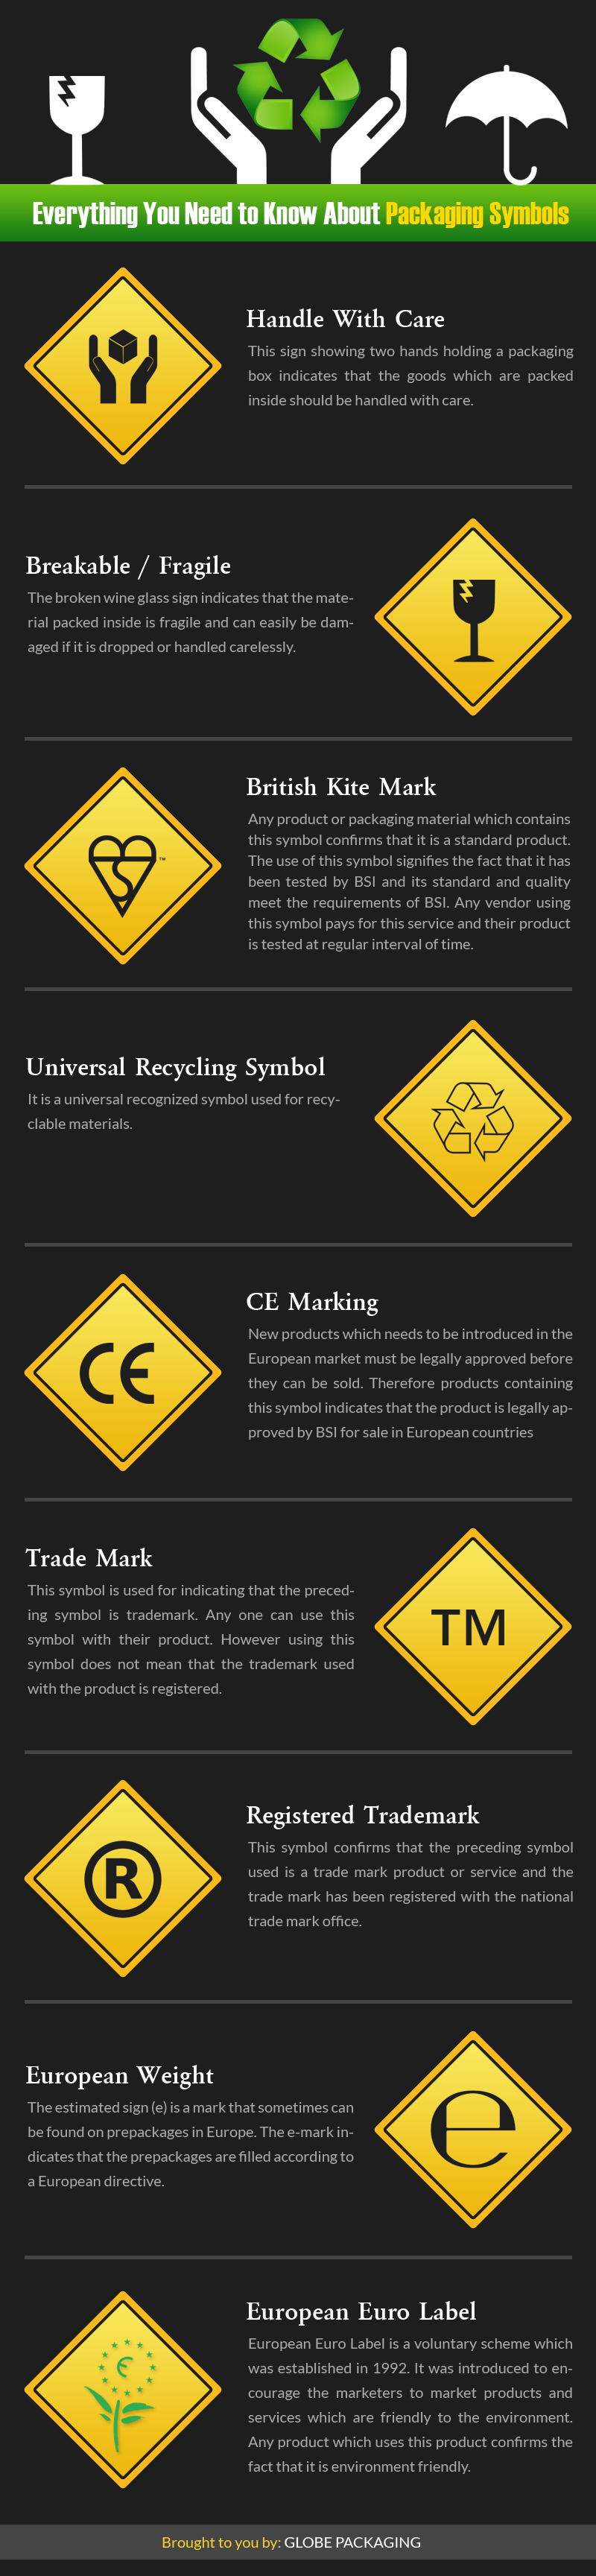 Packaging Symbols Explained By Globe Packaging